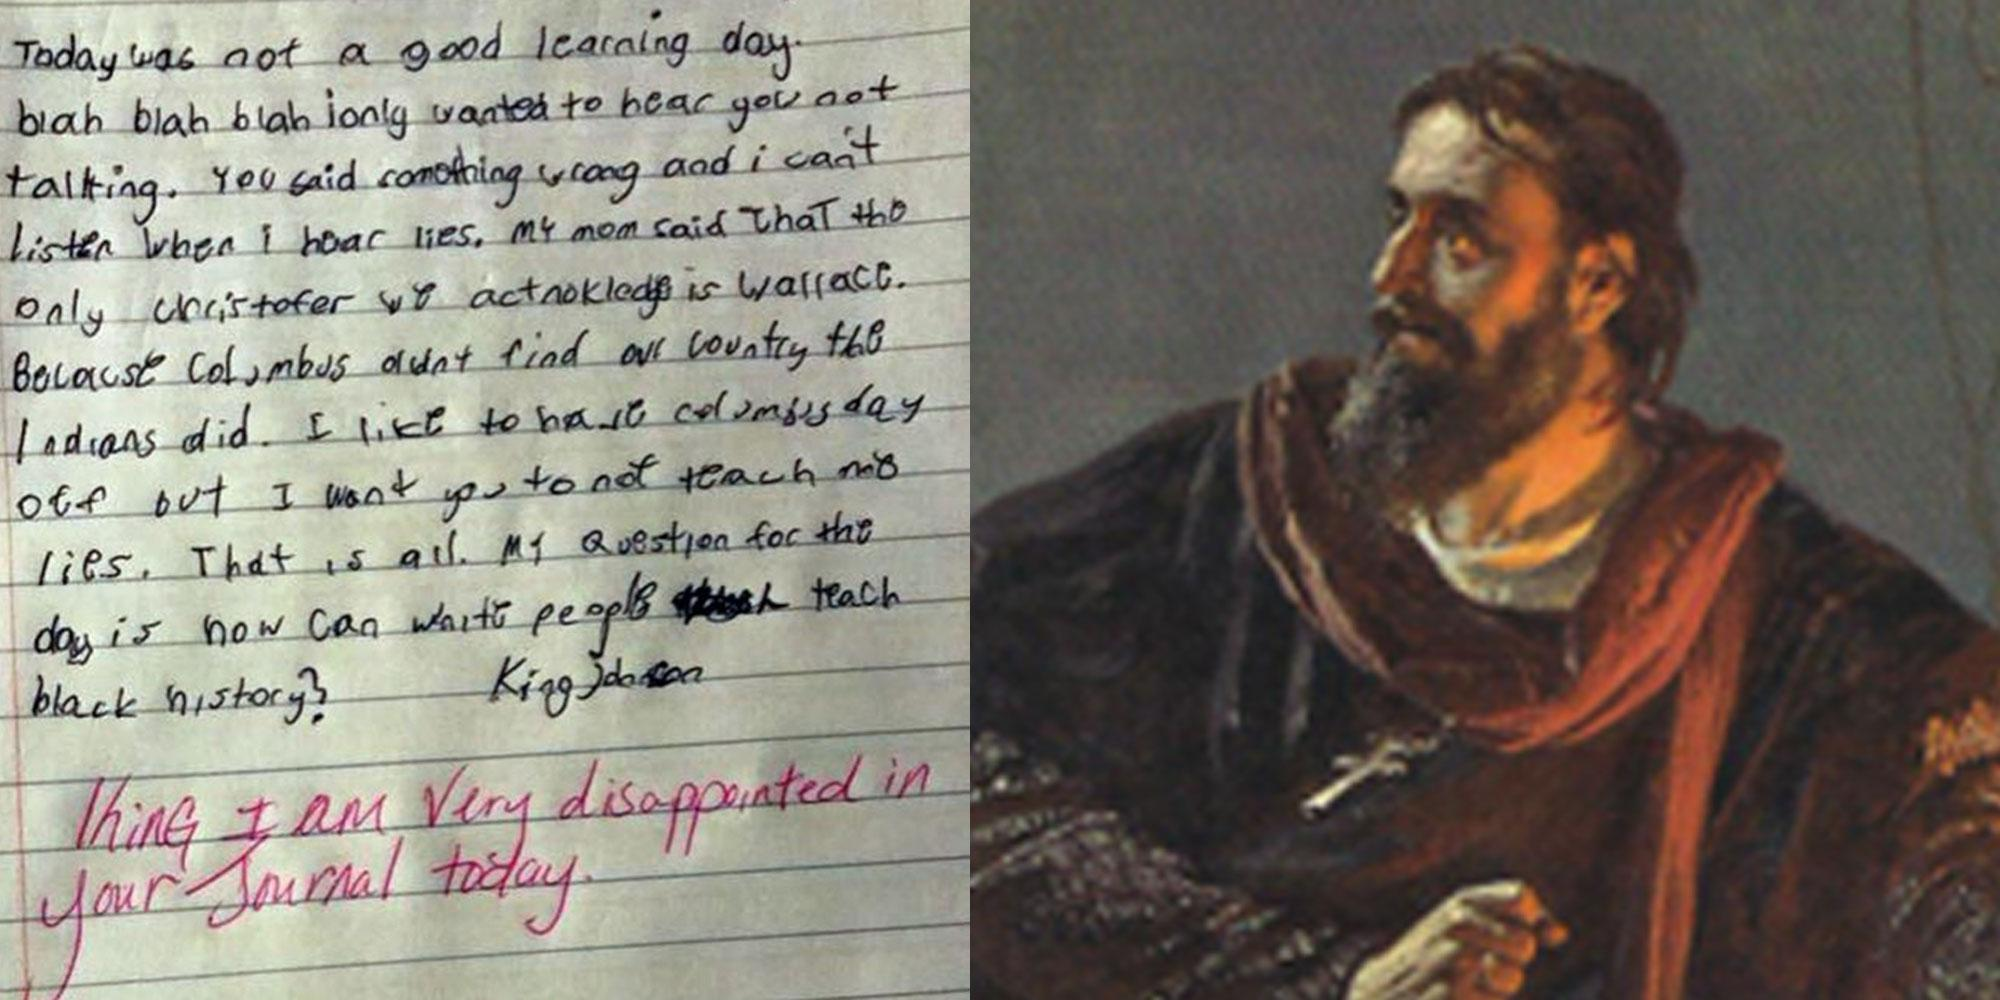 This kid myth-busted the history of Christopher Columbus to